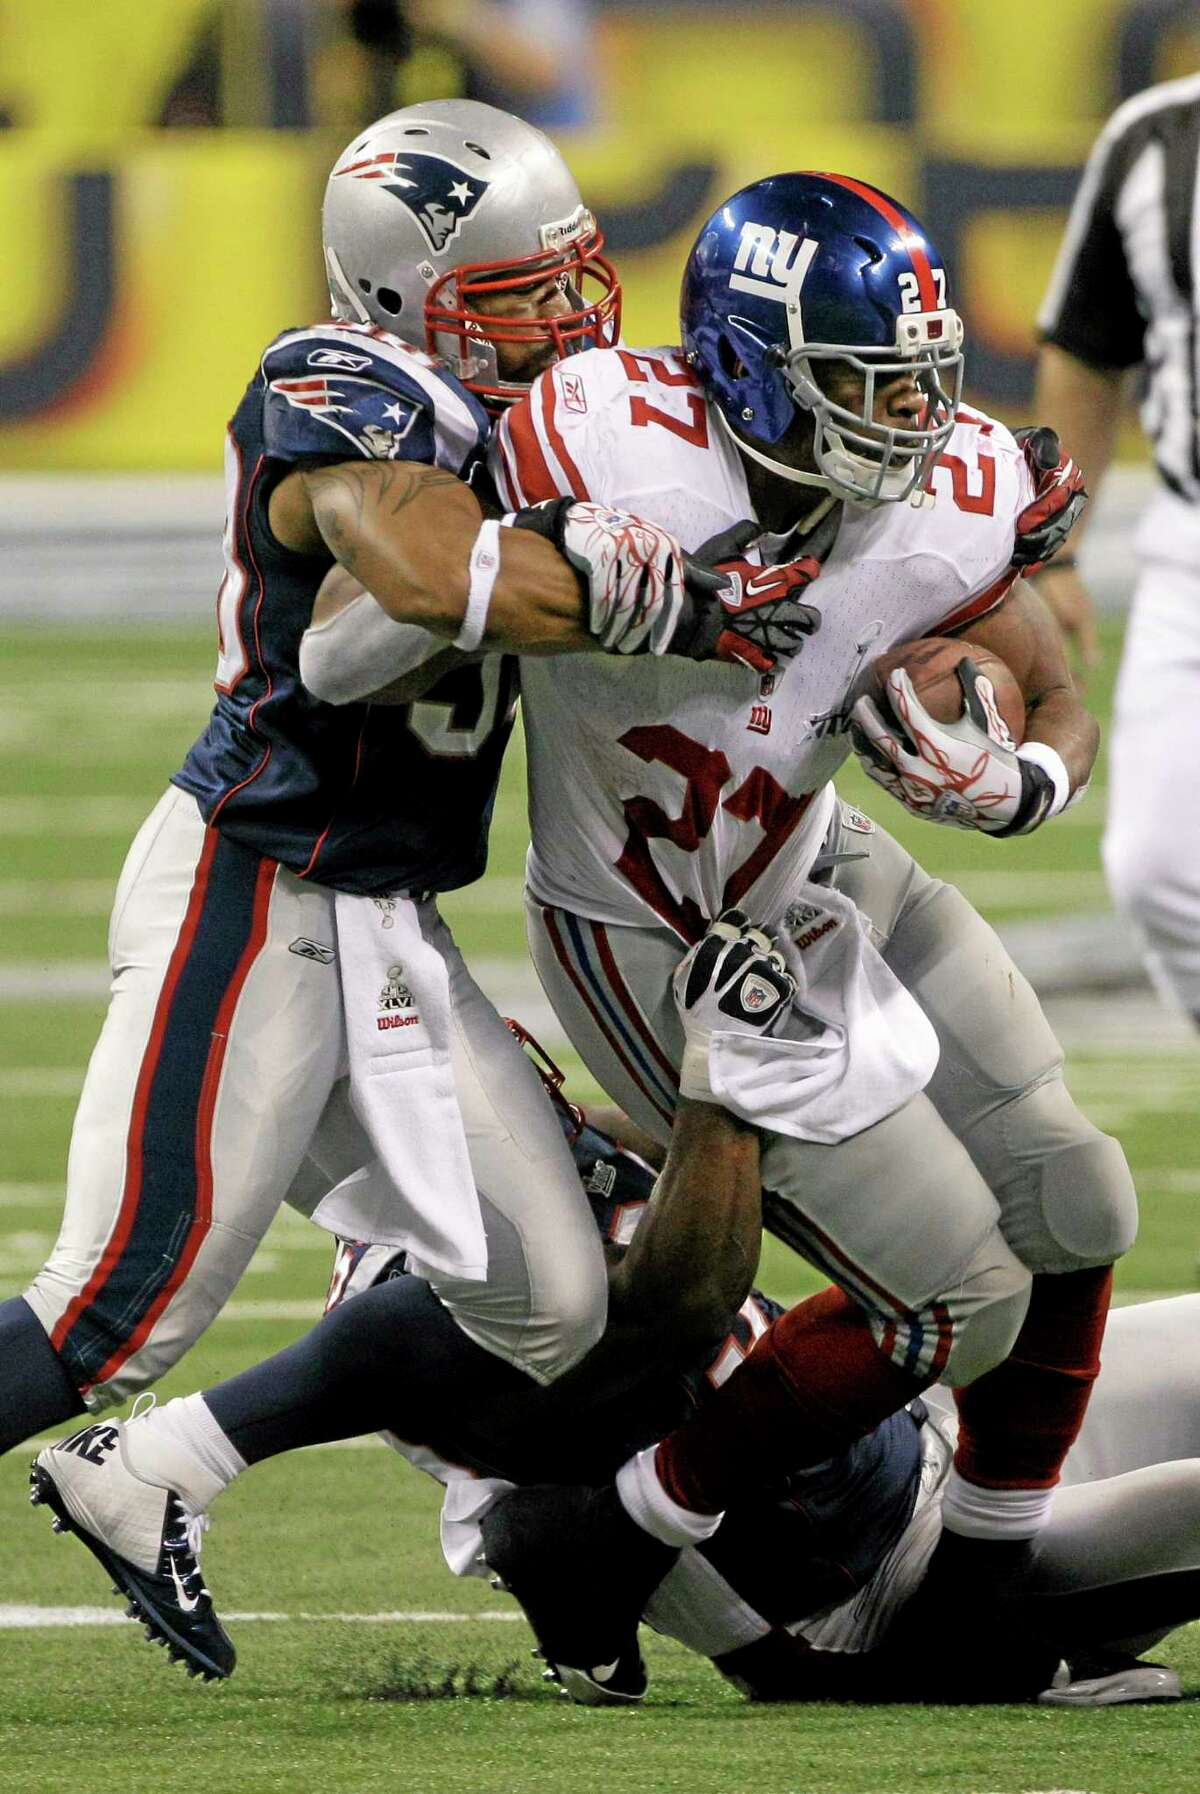 DAVID DUPREY — THE ASSOCIATED PRESS FILE PHOTO In this Feb. 5, 2012, file photo, New England Patriots linebacker Tracy White and defensive end Shaun Ellis tackle New York Giants running back Brandon Jacobs during the first half of Super Bowl XLVI in Indianapolis. Jacobs, who was a part of two Super Bowl-winning teams, signed with the Giants on Tuesday.